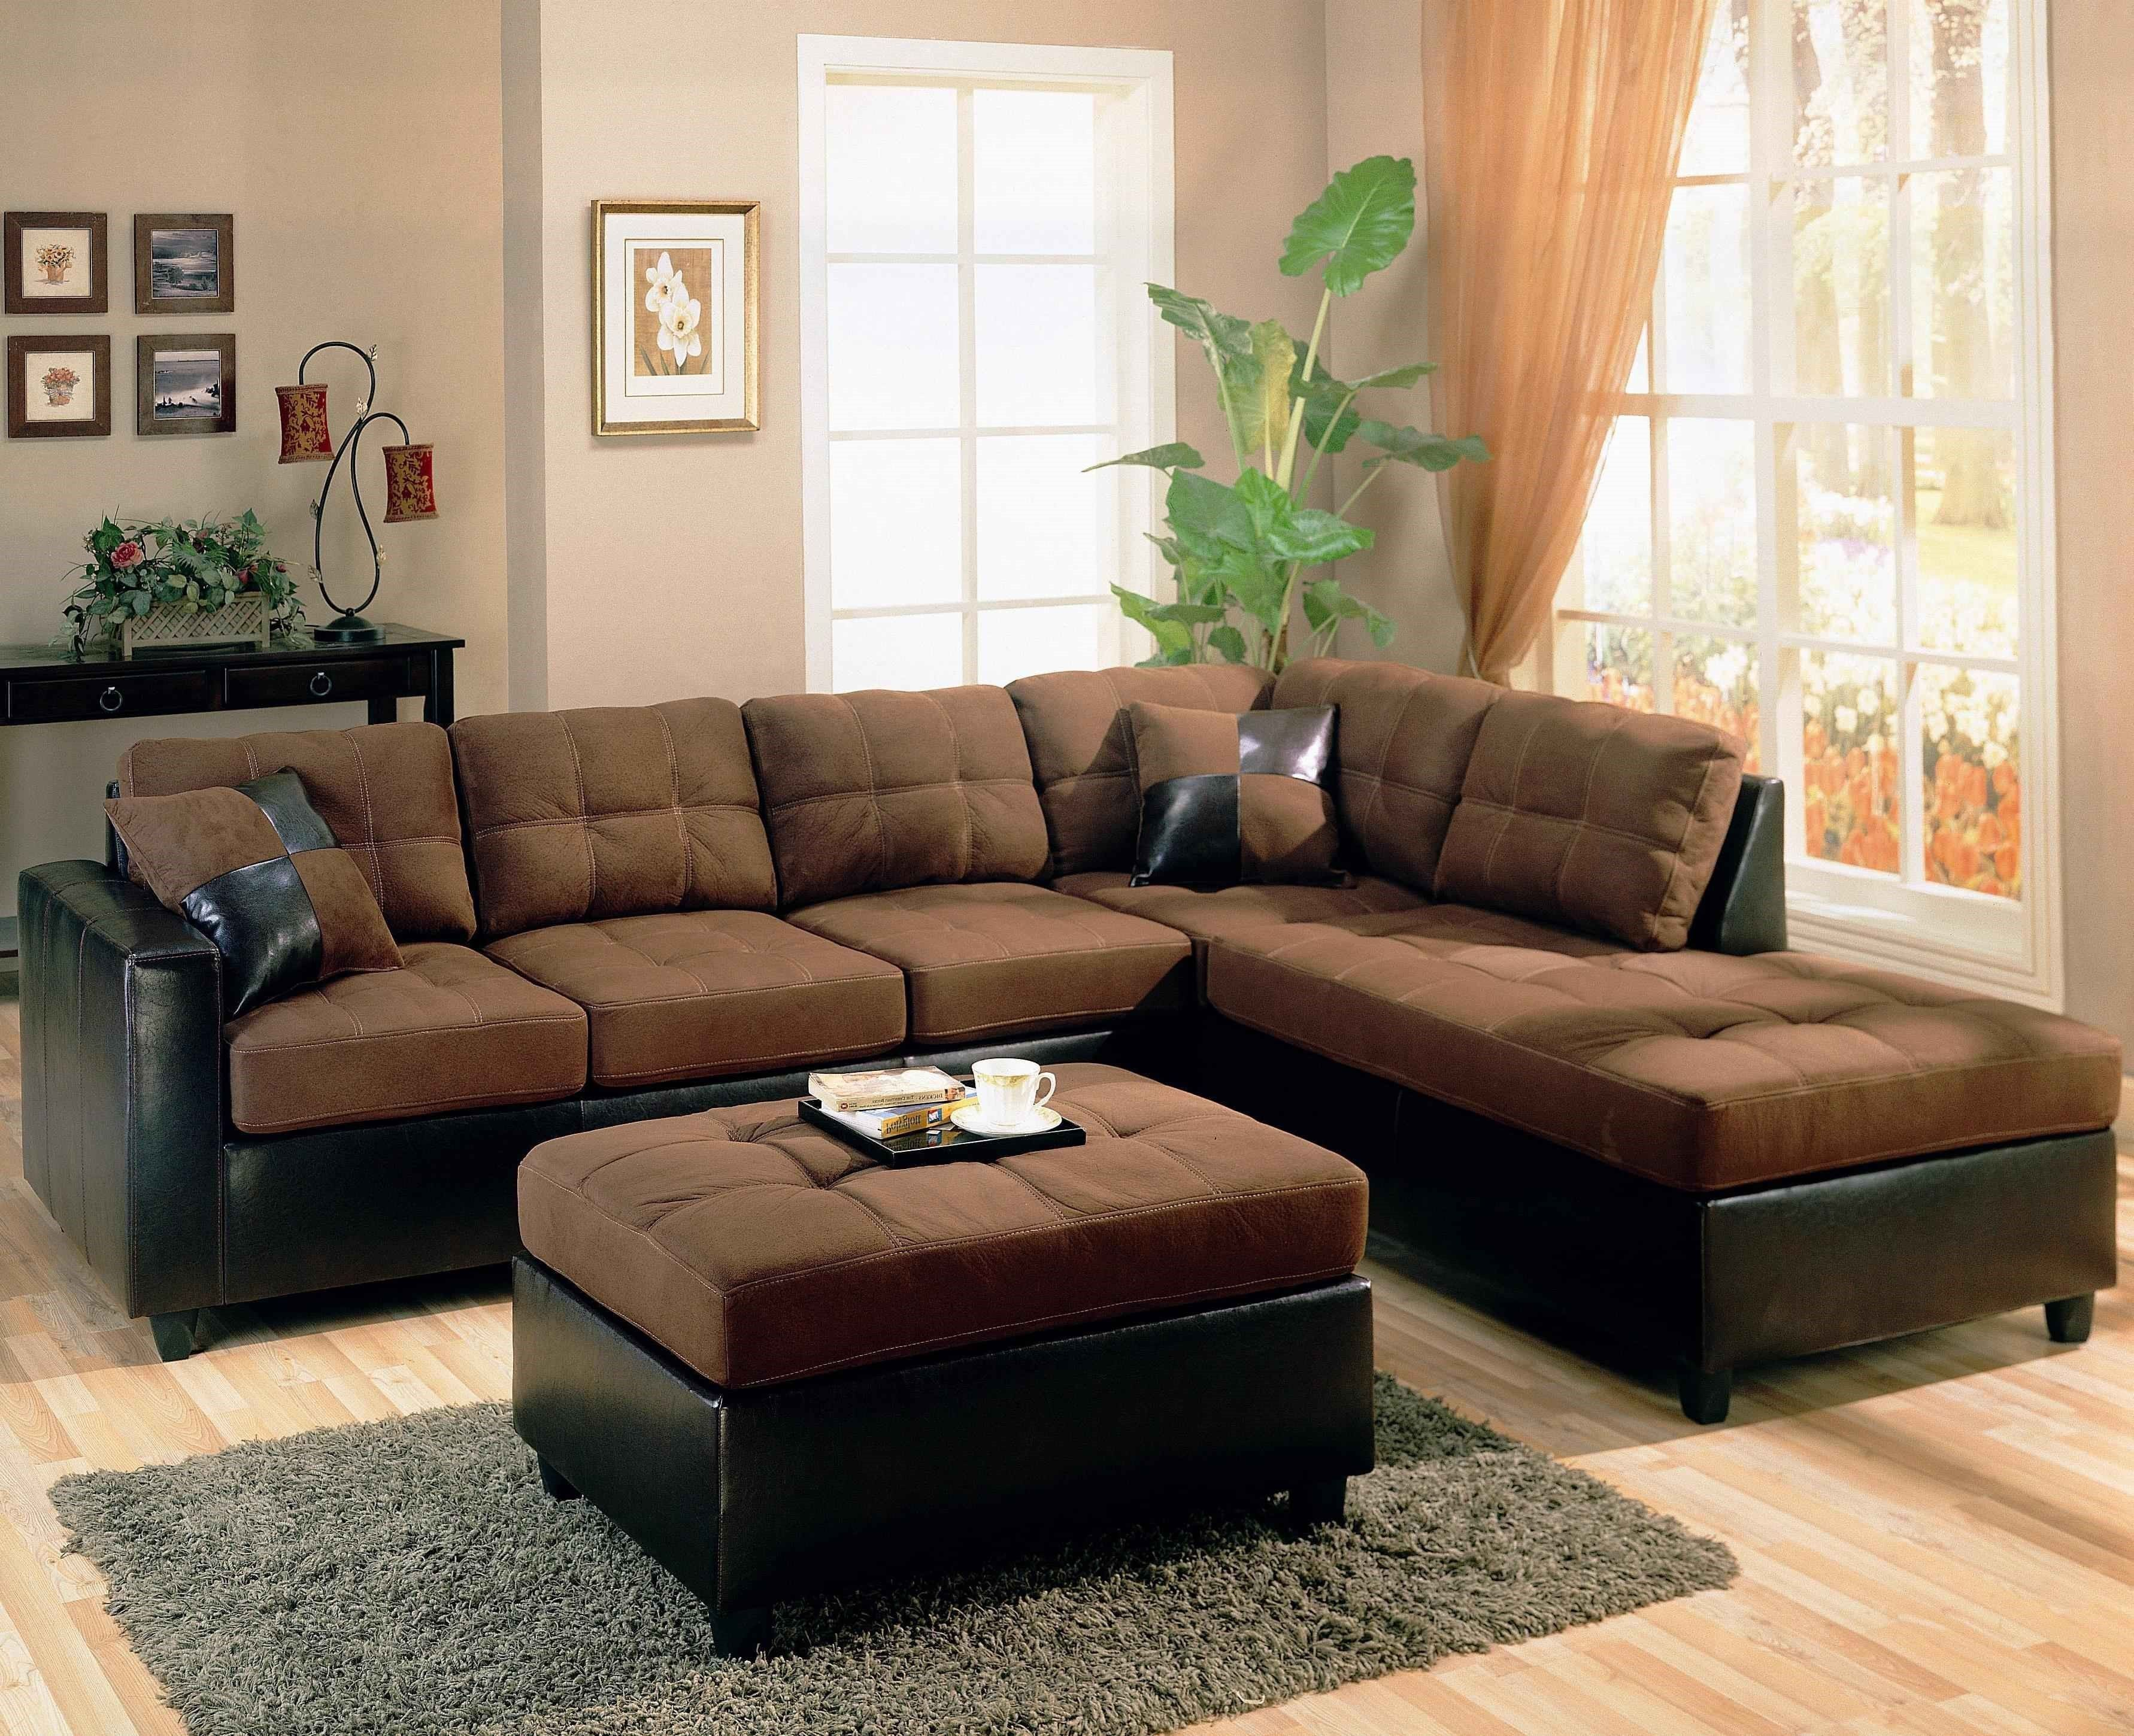 Sofa Designs For Small Living Rooms  Httpclubmaraton Beauteous Living Room Sofa Design Review